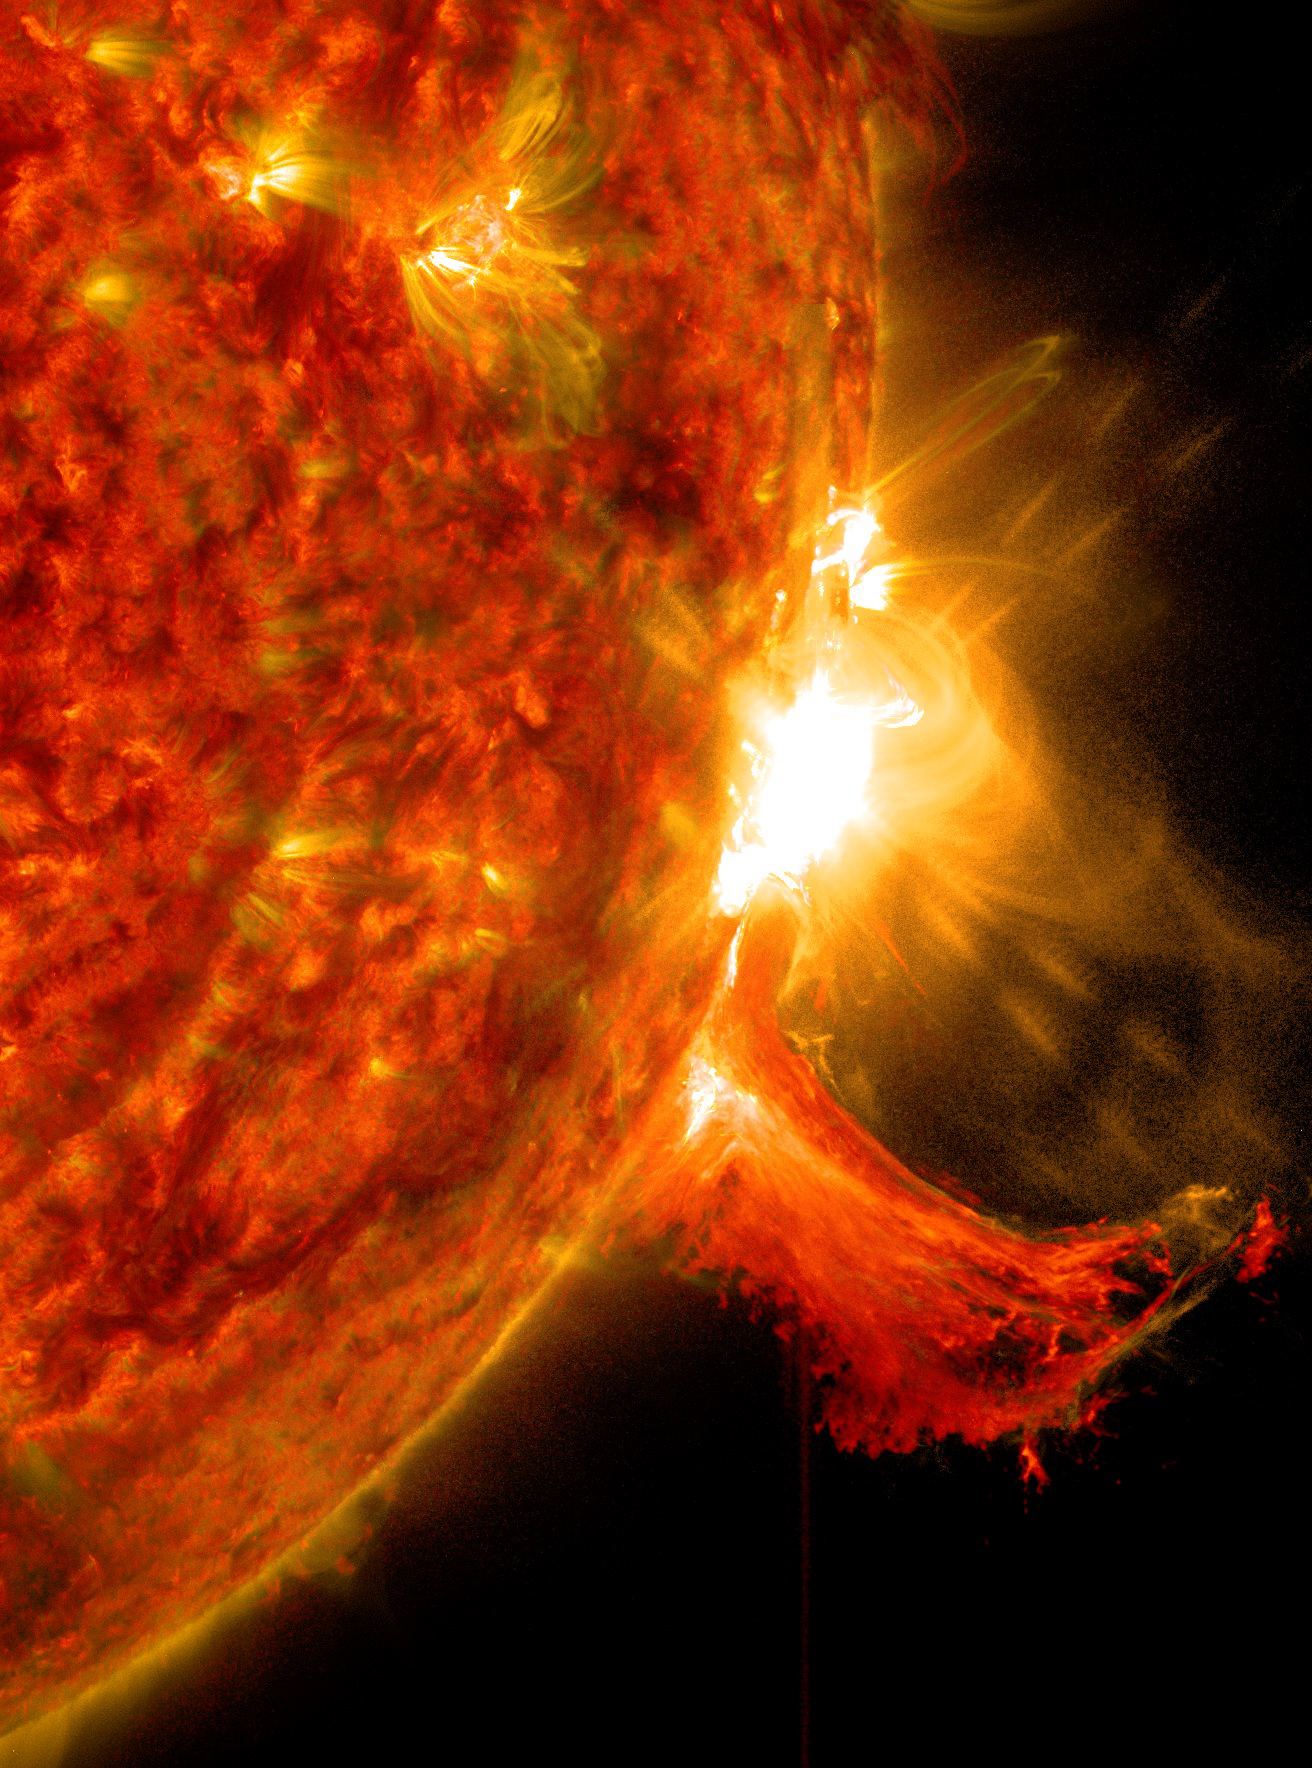 NASA Releases Images of a Mid-level Solar Flare | NASA